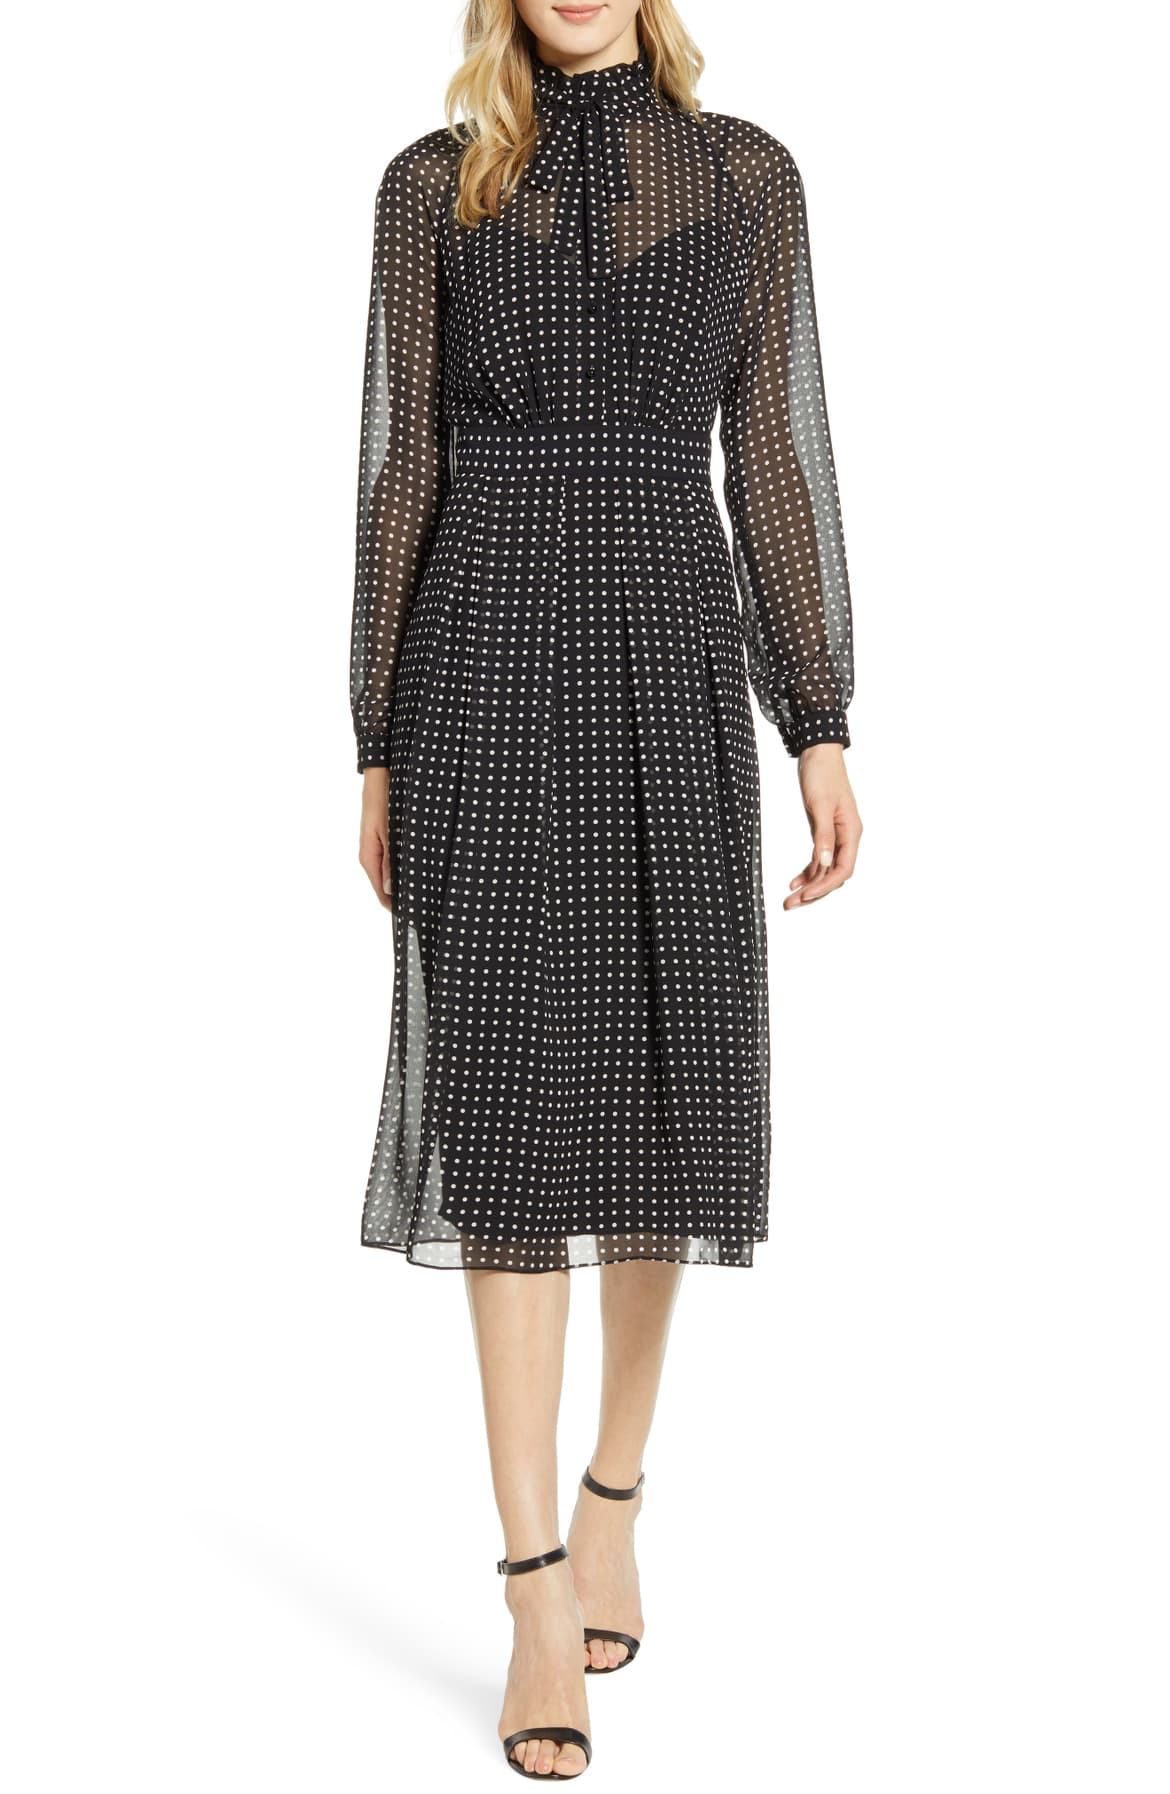 Perfect for a night at the ballet, a shirtdress of sheer, polka-dot georgette is fashioned with a fitted waist, pleated skirt and a bow at the demure neckline. $139. Shop the Look{ }(Image: Nordstrom){ }